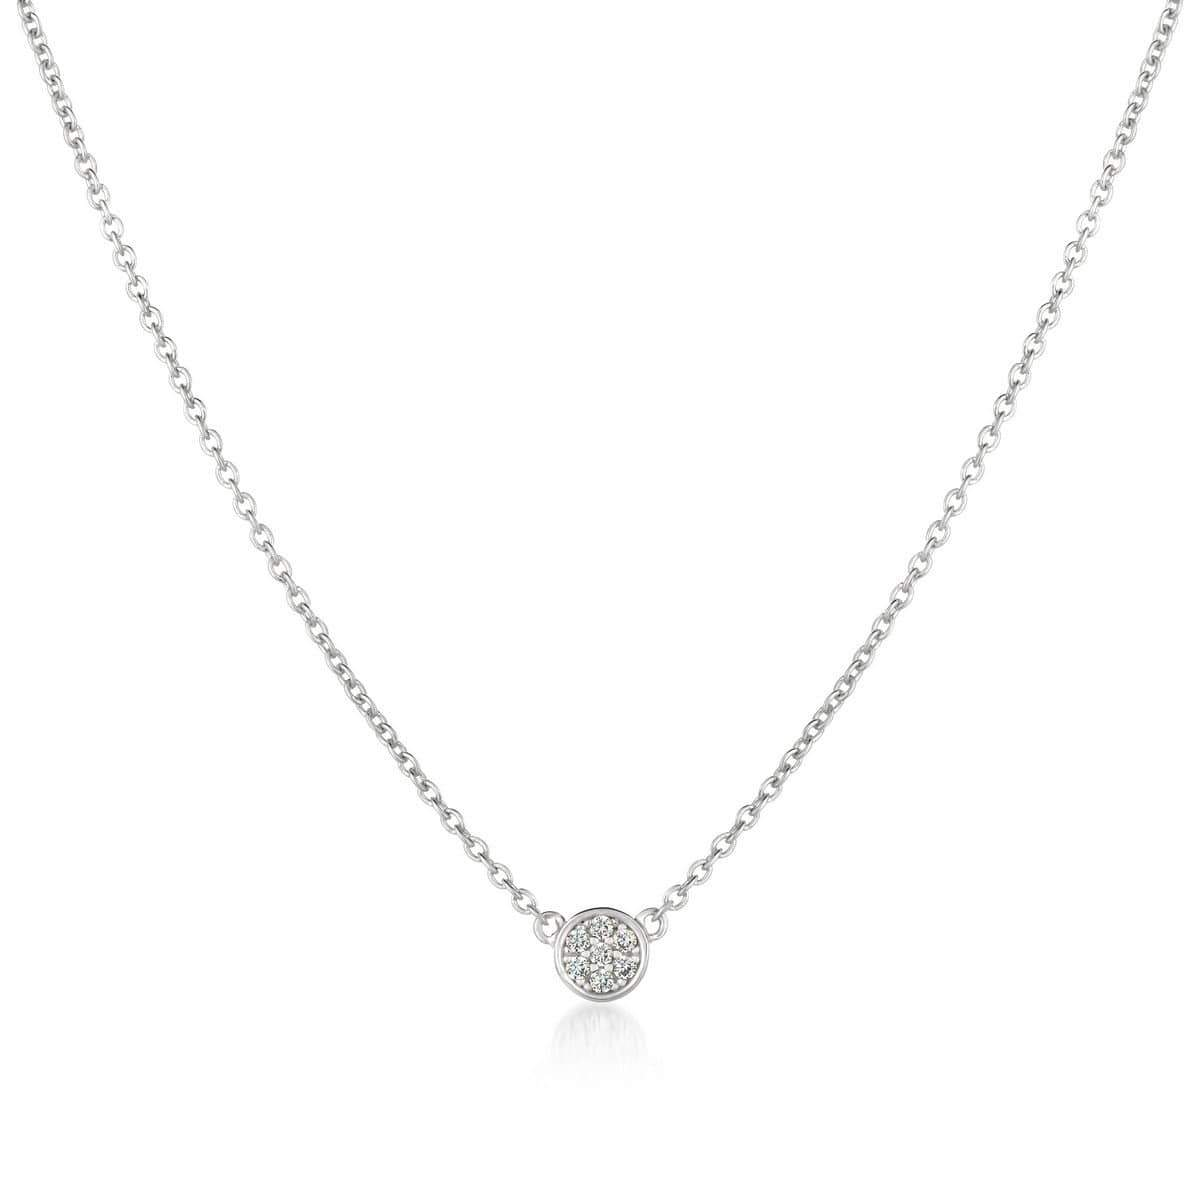 Crislu Jewelry CRISLU Single Sugar Drop Necklace finished in Pure Platinum